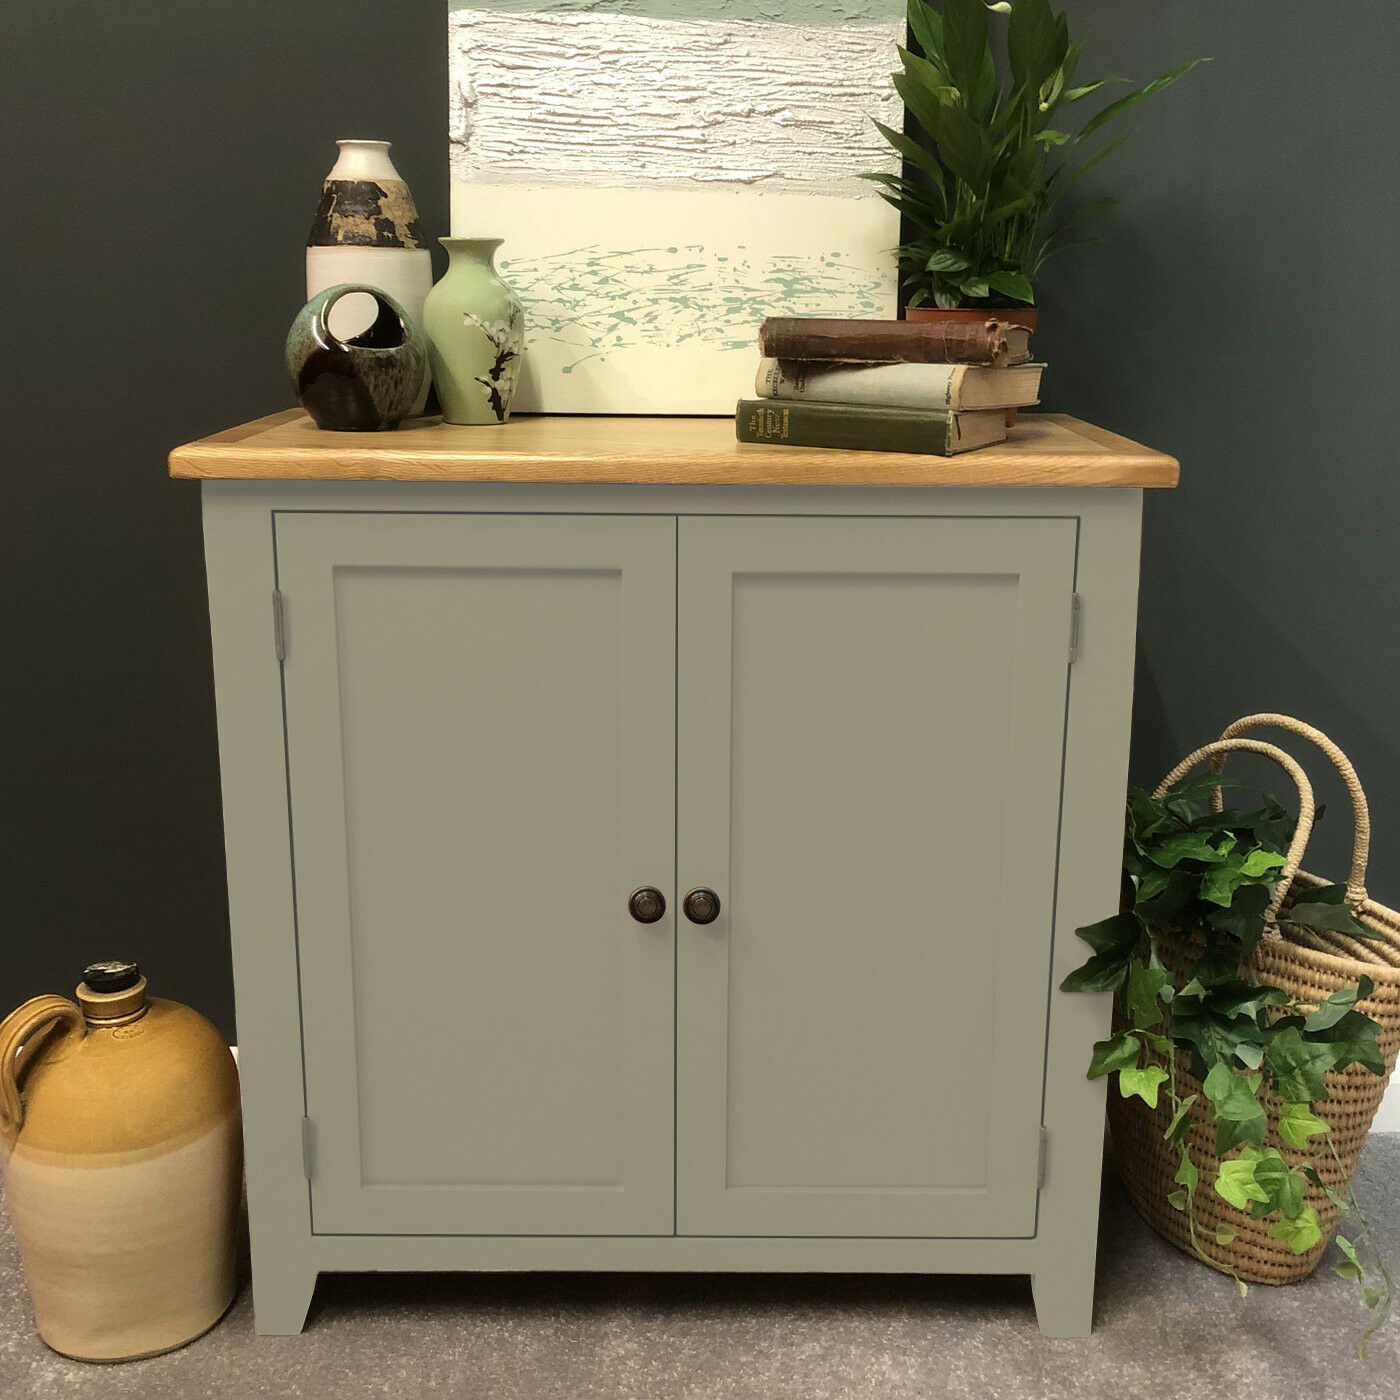 Details about grey painted oak linen cupboard storage cabinet solid wood sideboard woburn